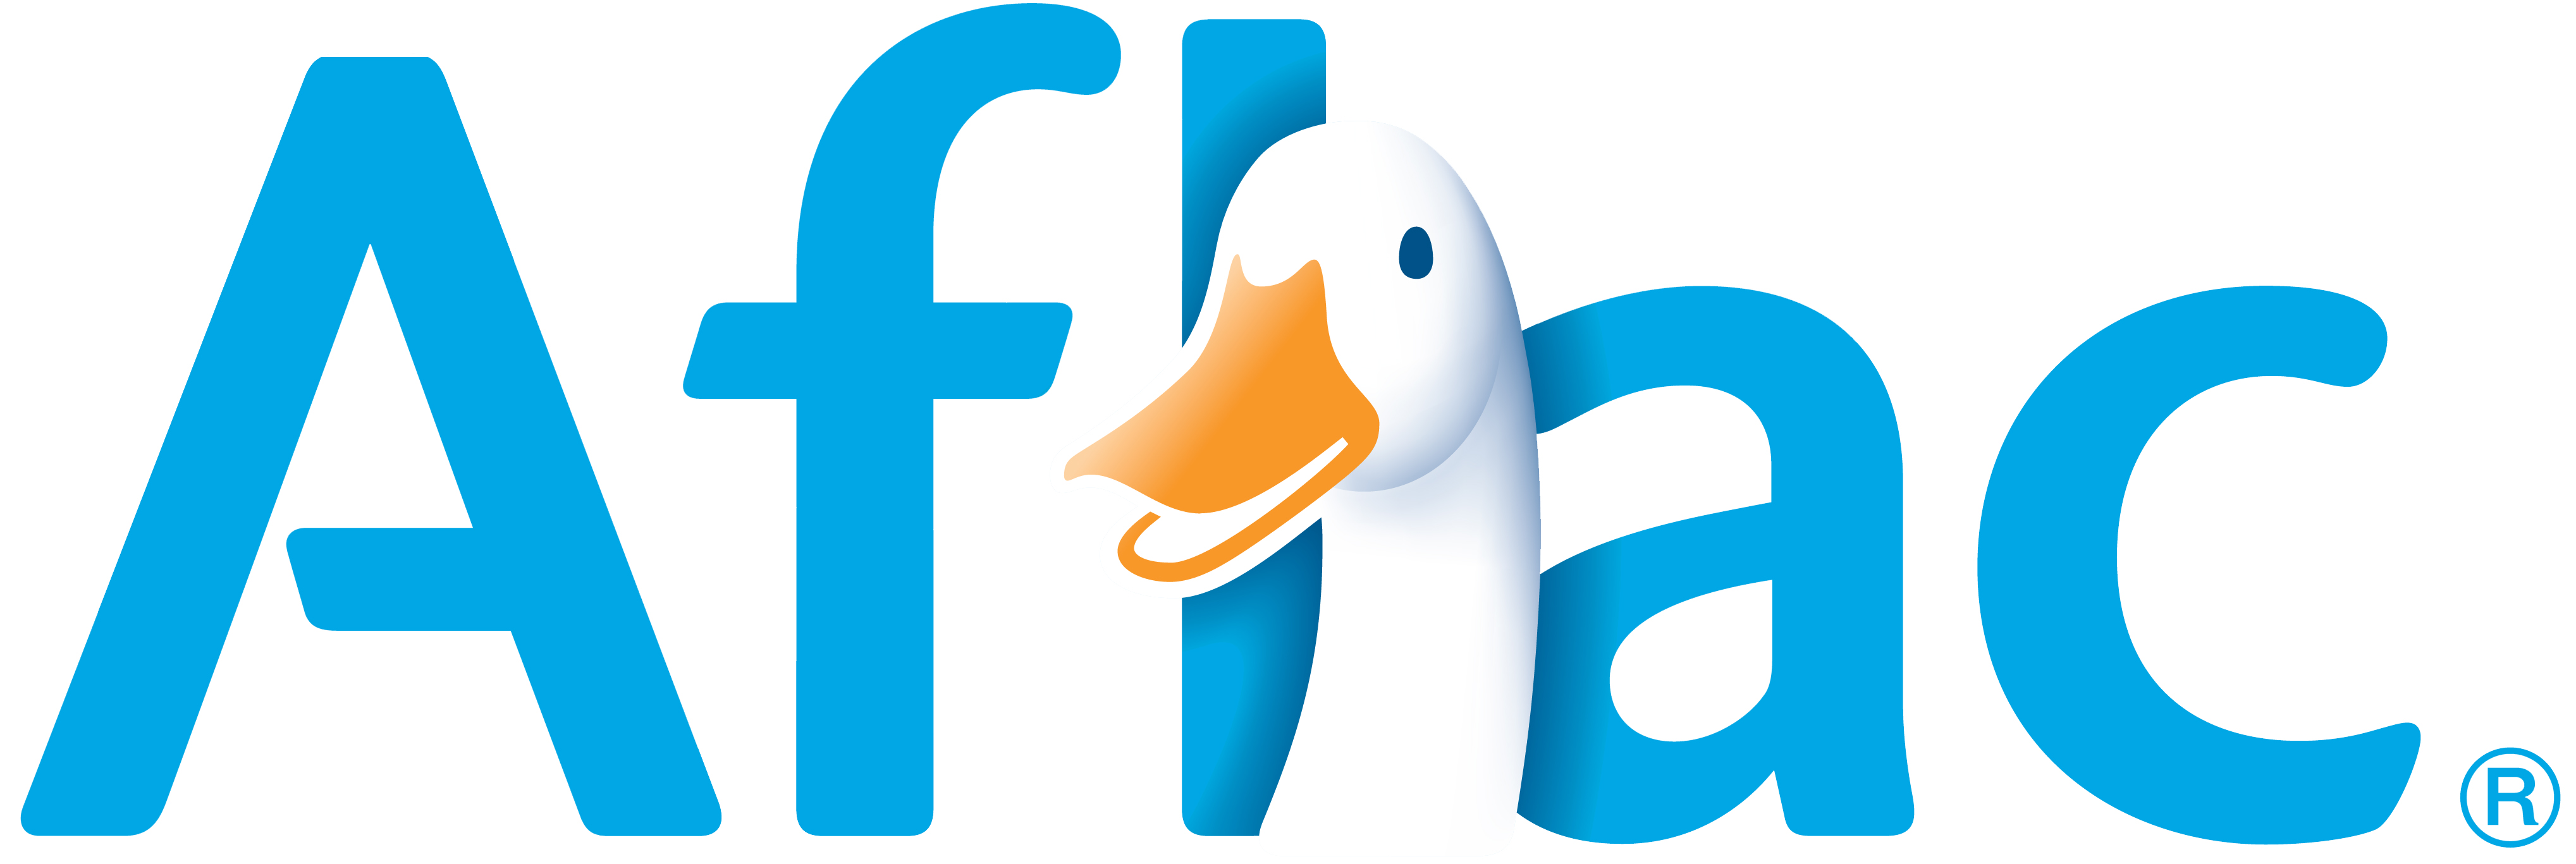 Hot Stock Commentary: Aflac (AFL)